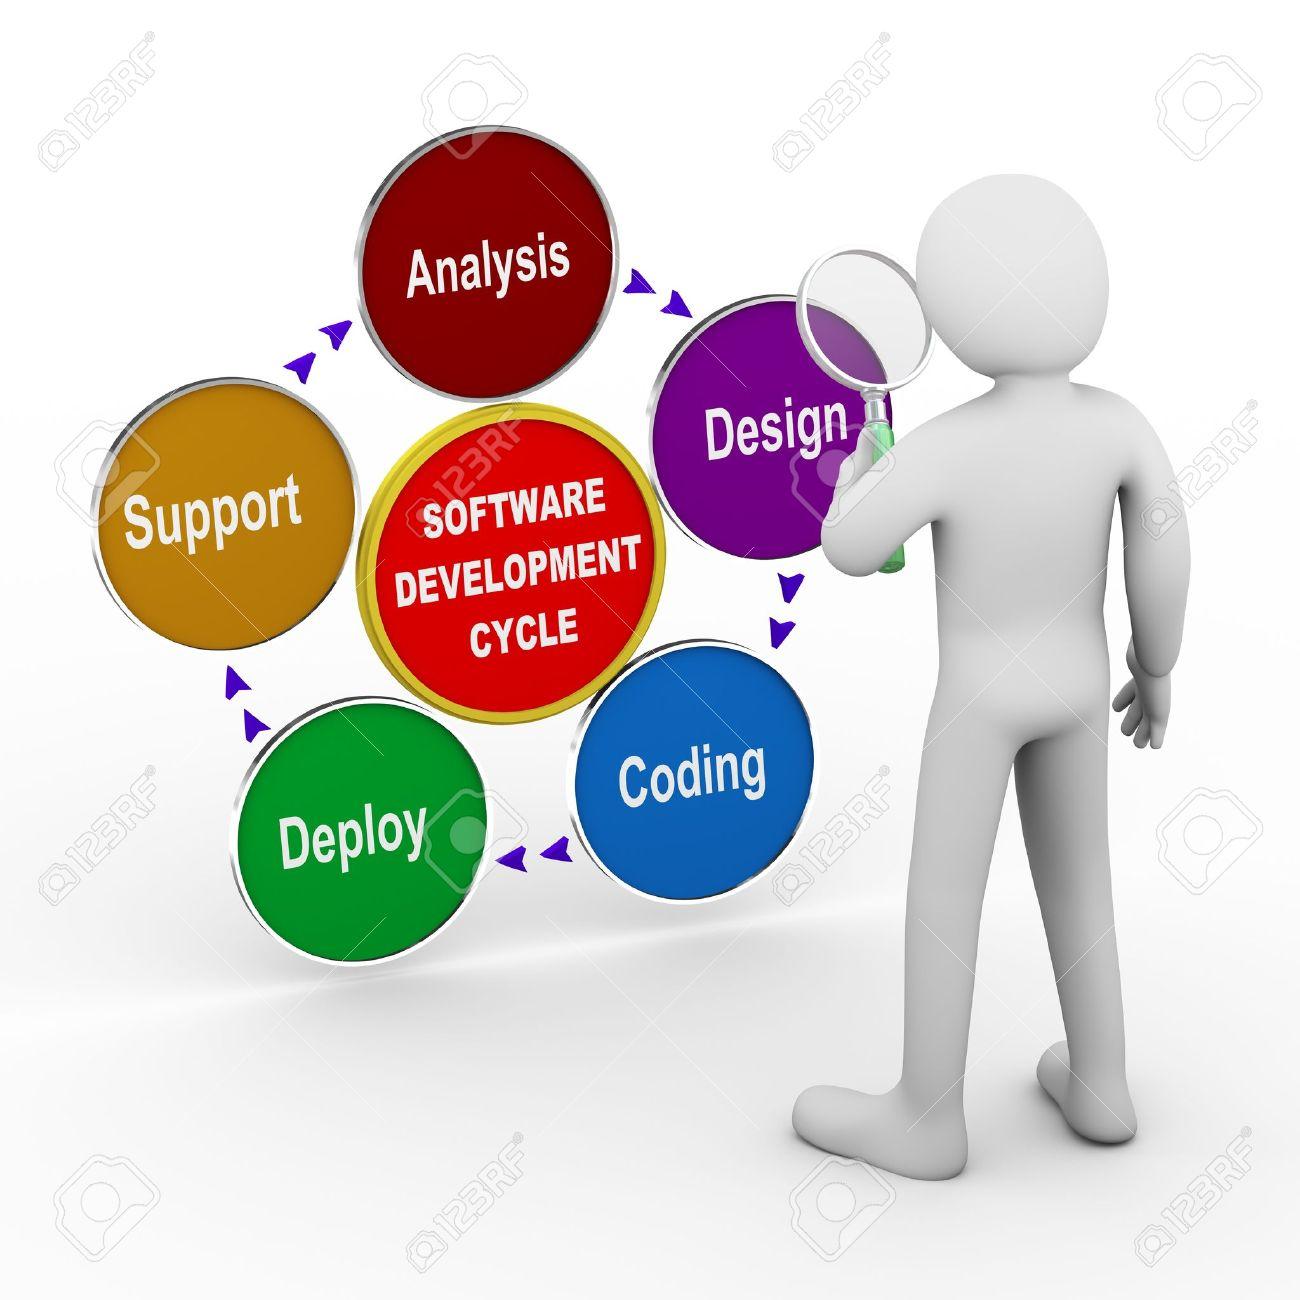 hight resolution of 3d illustration of man with magnifier analysing circular flow chart of life cycle of software development